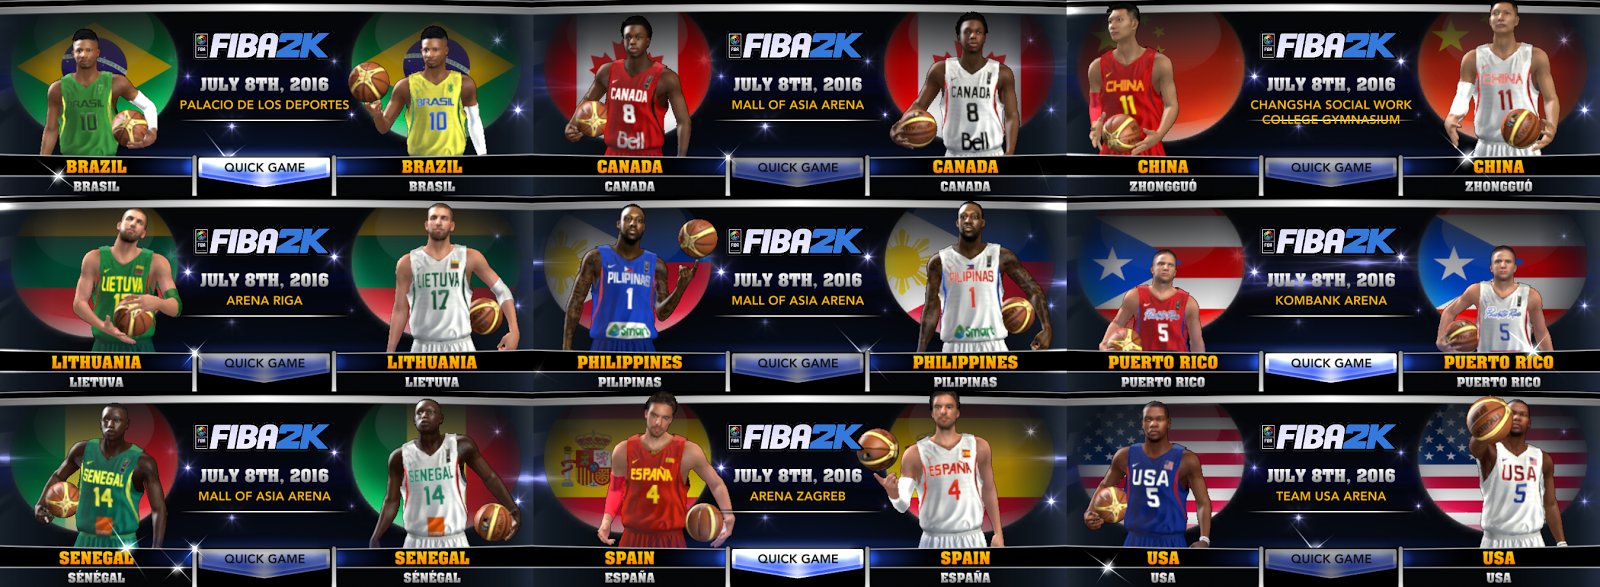 2014 Team Nba Rosters 2015